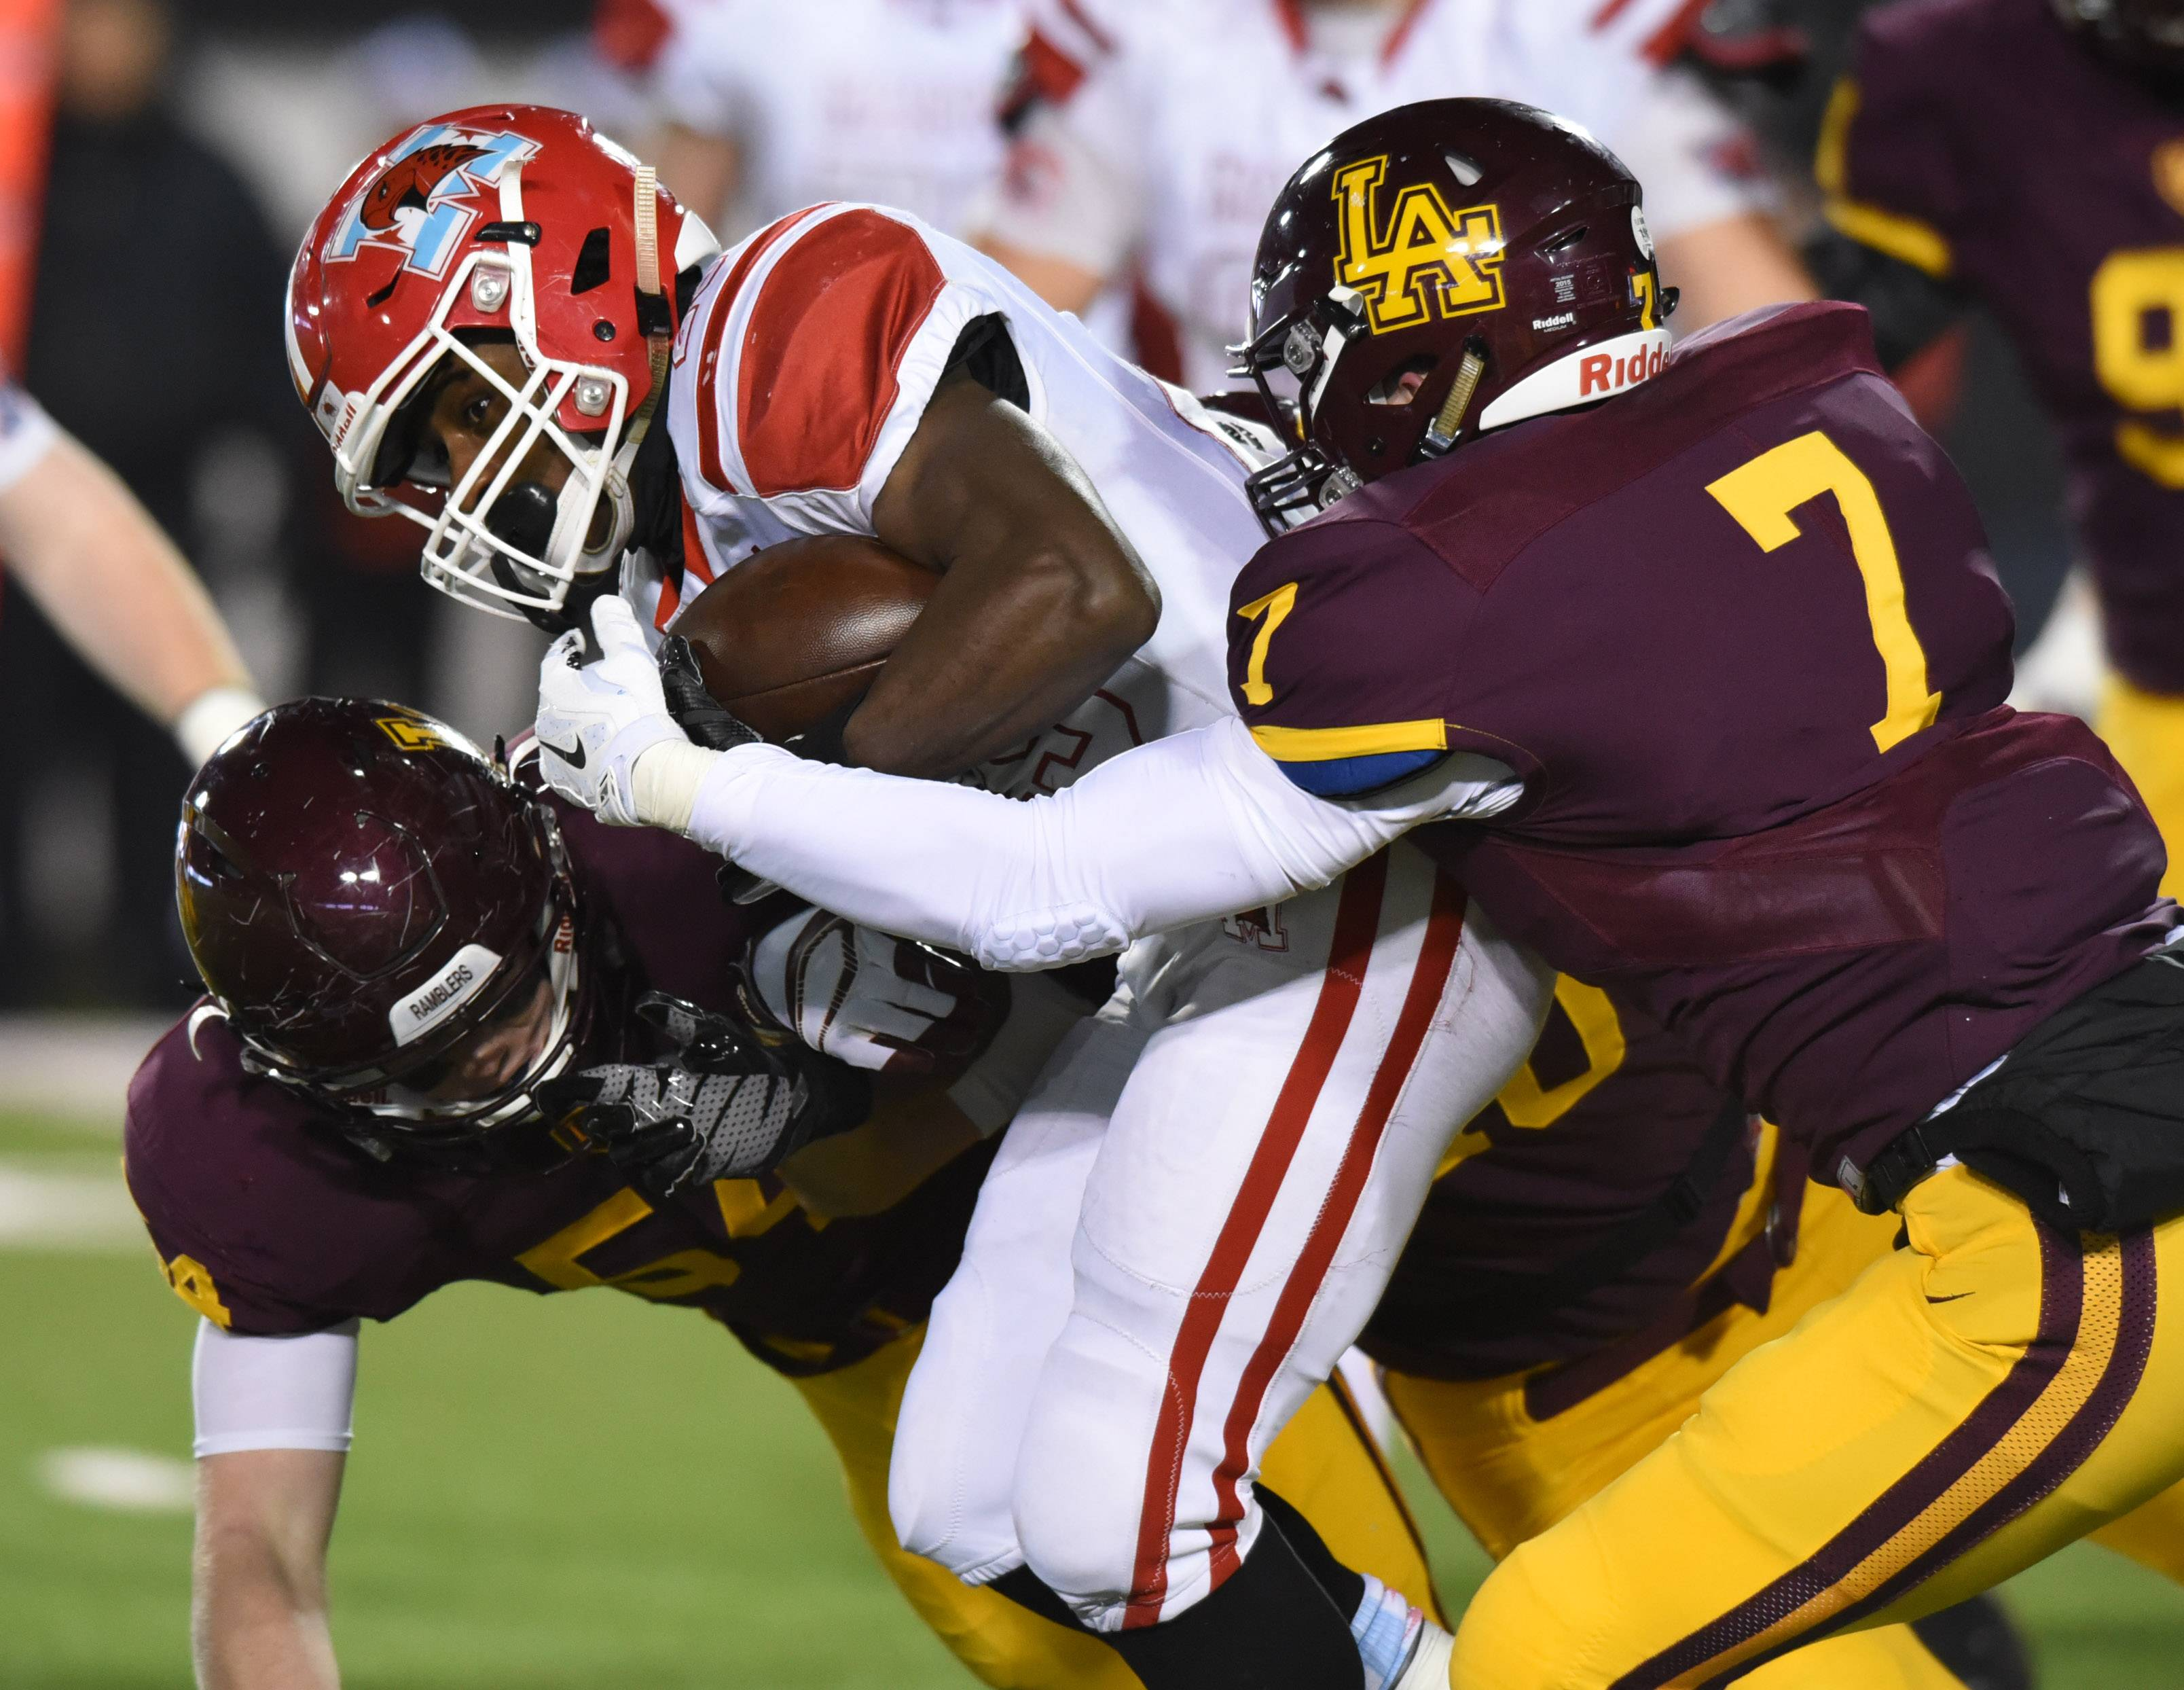 Loyola's Graham Repp, left, and Joey Zitella tackle Marist's Darshon Mccullough during the Class 8A football state final at Huskie Stadium in DeKalb Saturday.